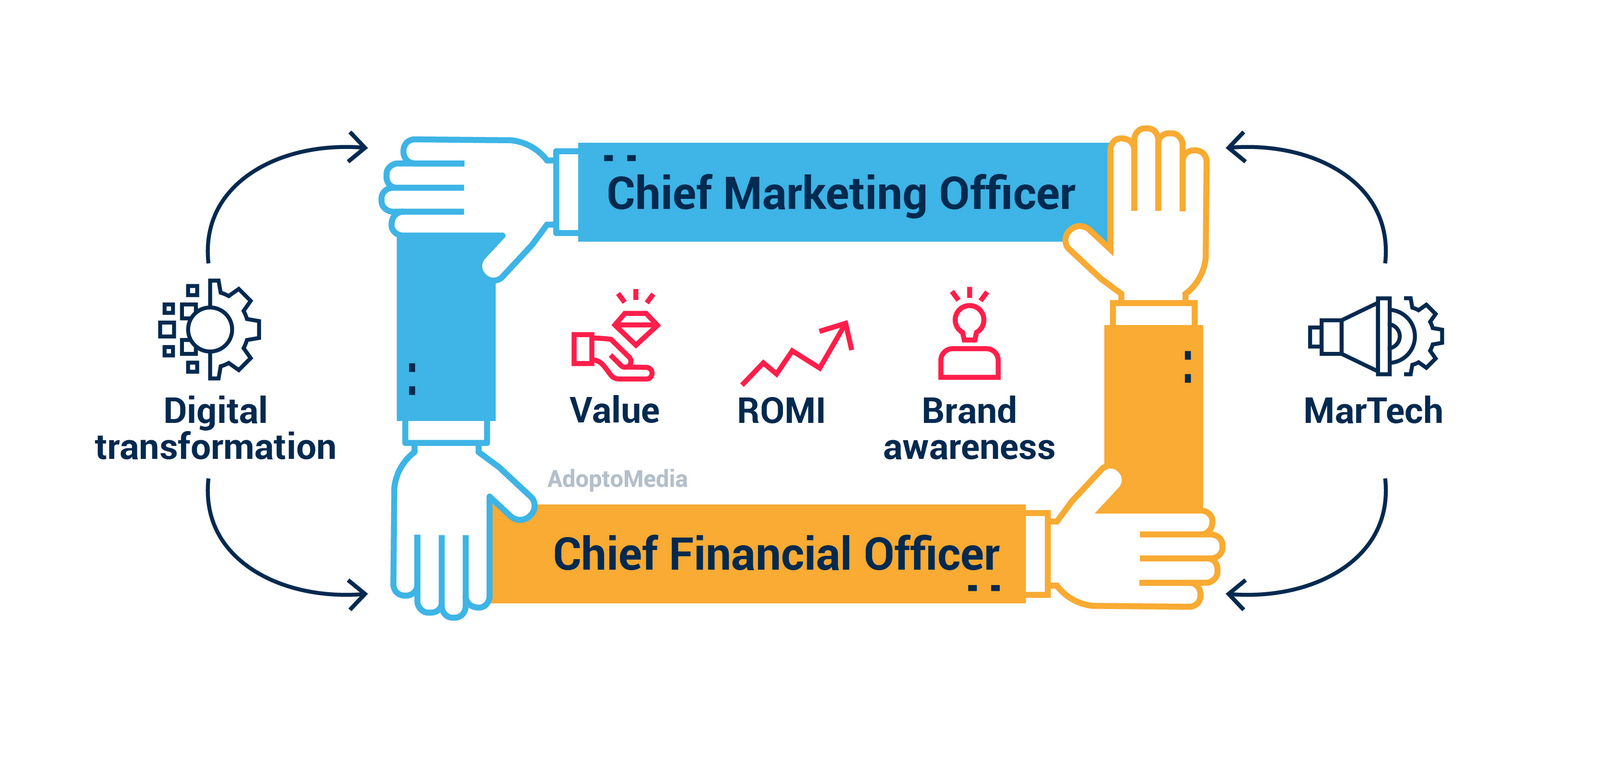 digital transformation, cross department cooperation, CMO, CFO, marketing and finance, ROMI, MarTech, Marketing technology, brand awareness, value